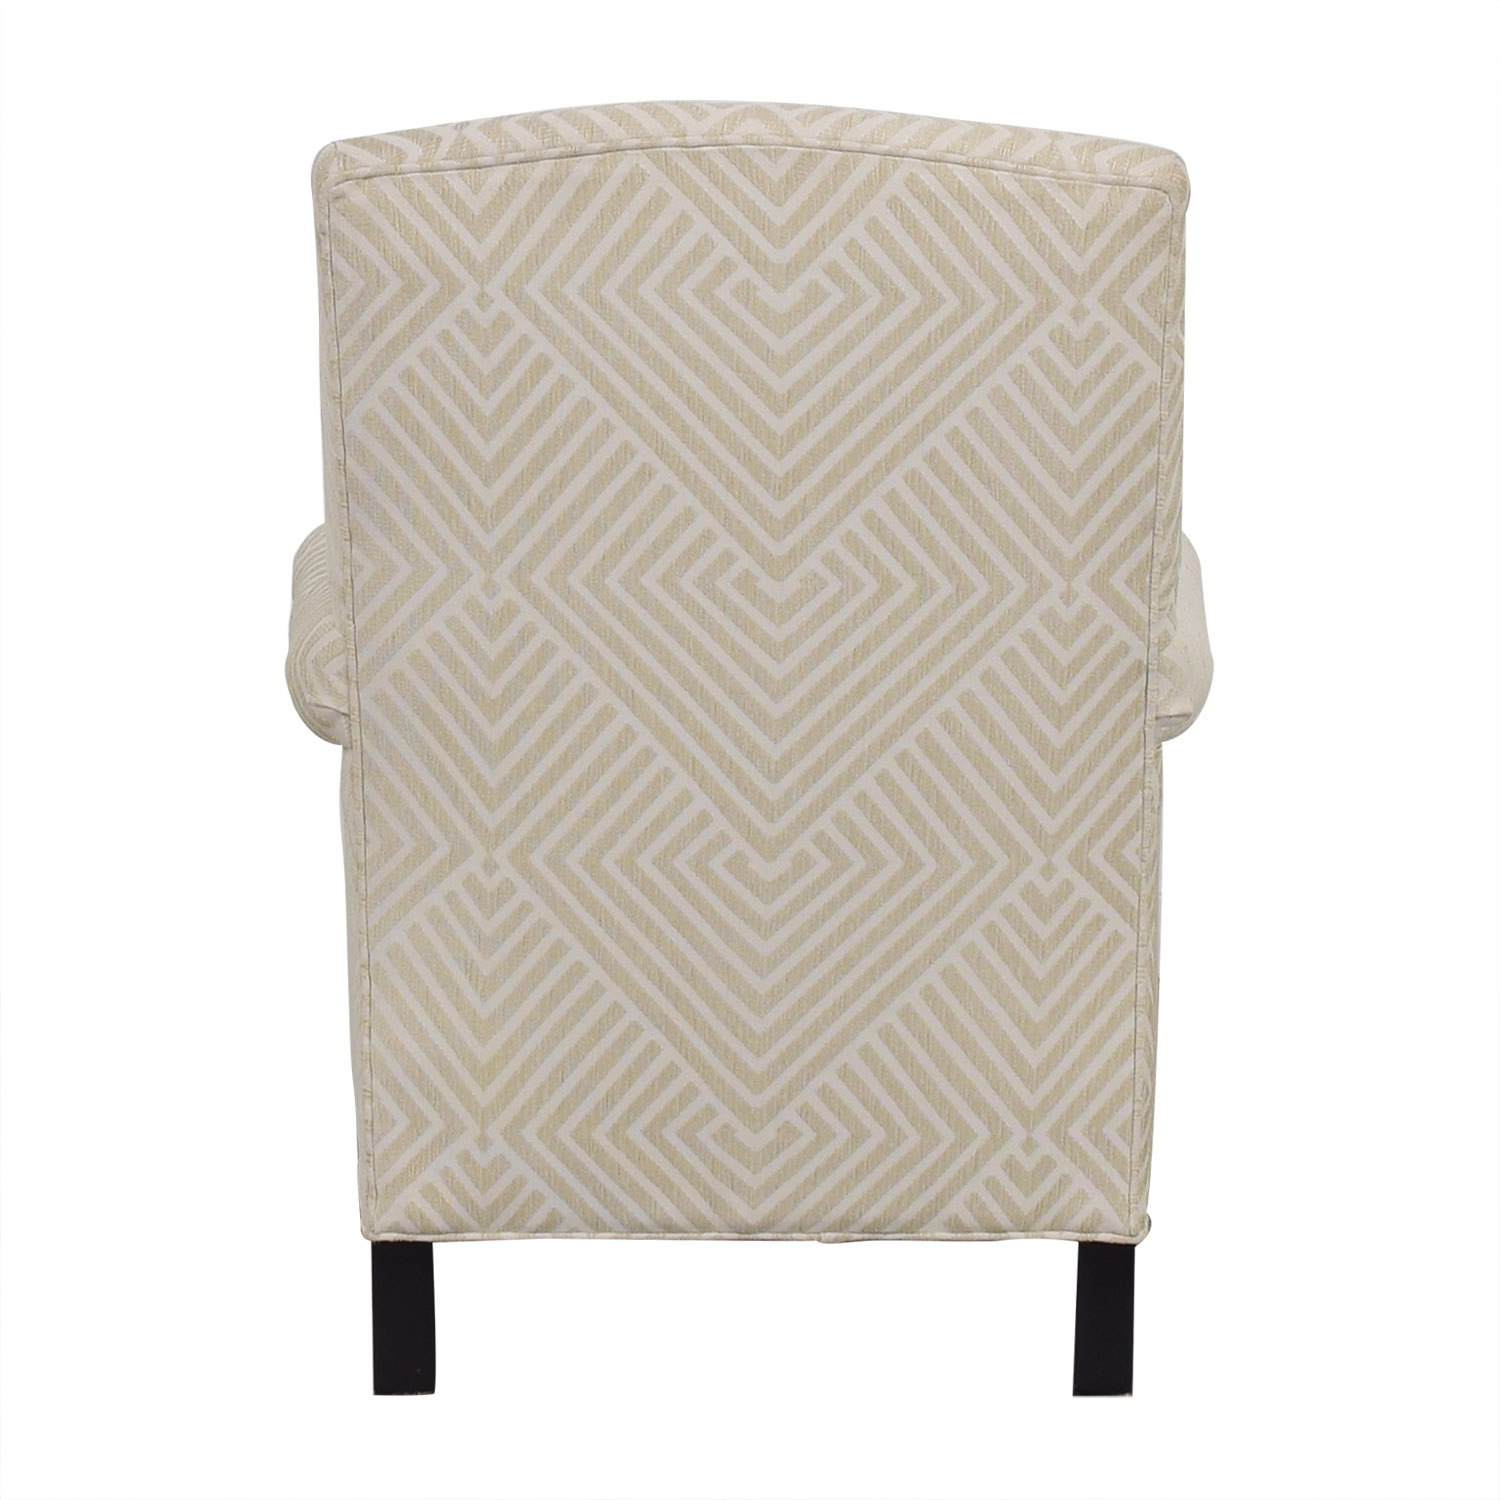 shop Mitchell Gold + Bob Williams Mitchell Gold + Bob Williams Upholstered Armchair online